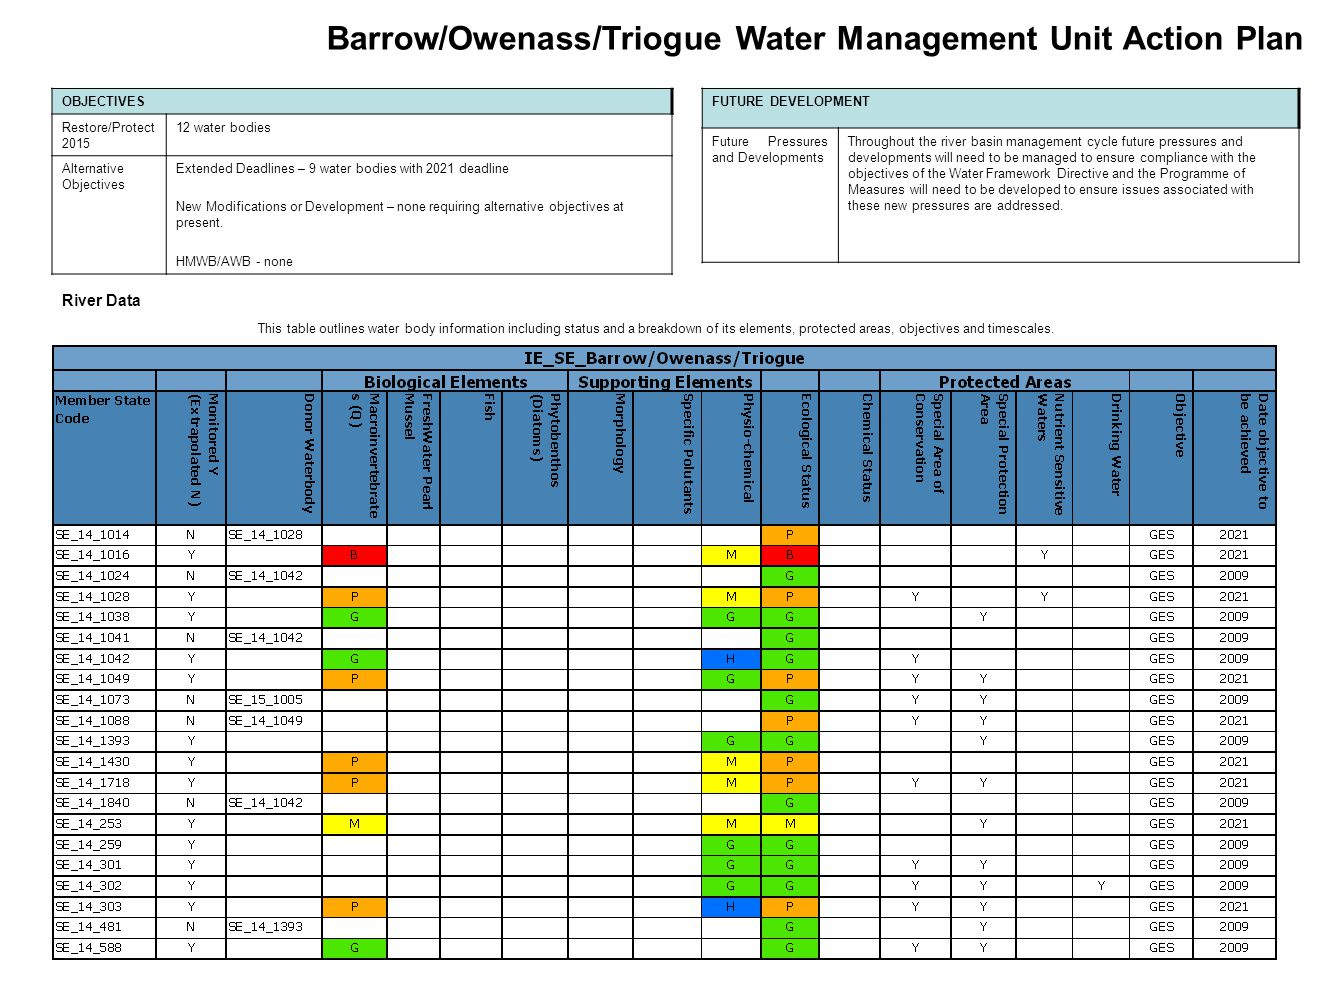 Barrow/Owenass/Triogue Water Management Unit Action Plan OBJECTIVES Restore/Protect 2015 12 water bodies Alternative Objectives Extended Deadlines – 9